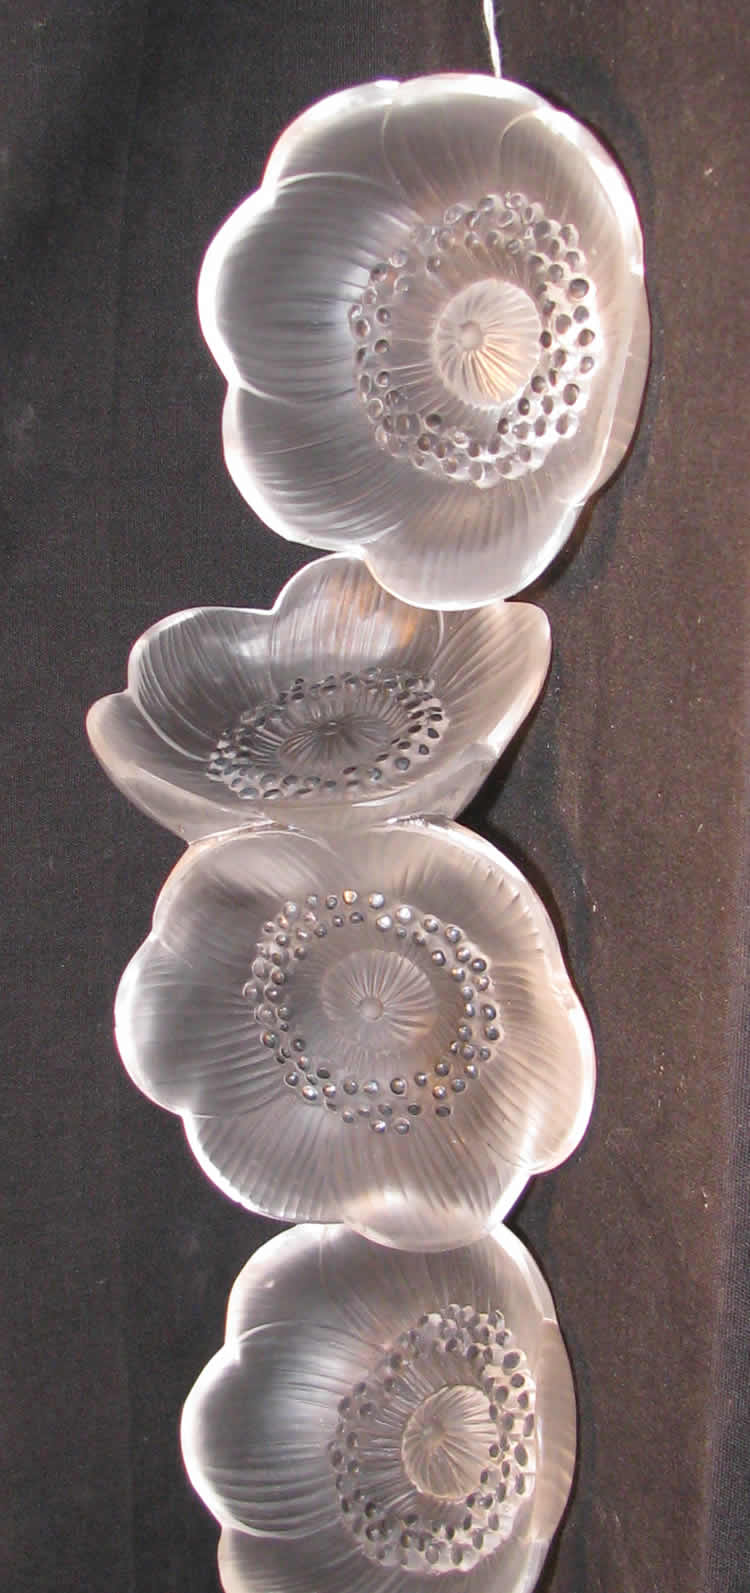 Rene Lalique Anemone Fermee Flower Decoration